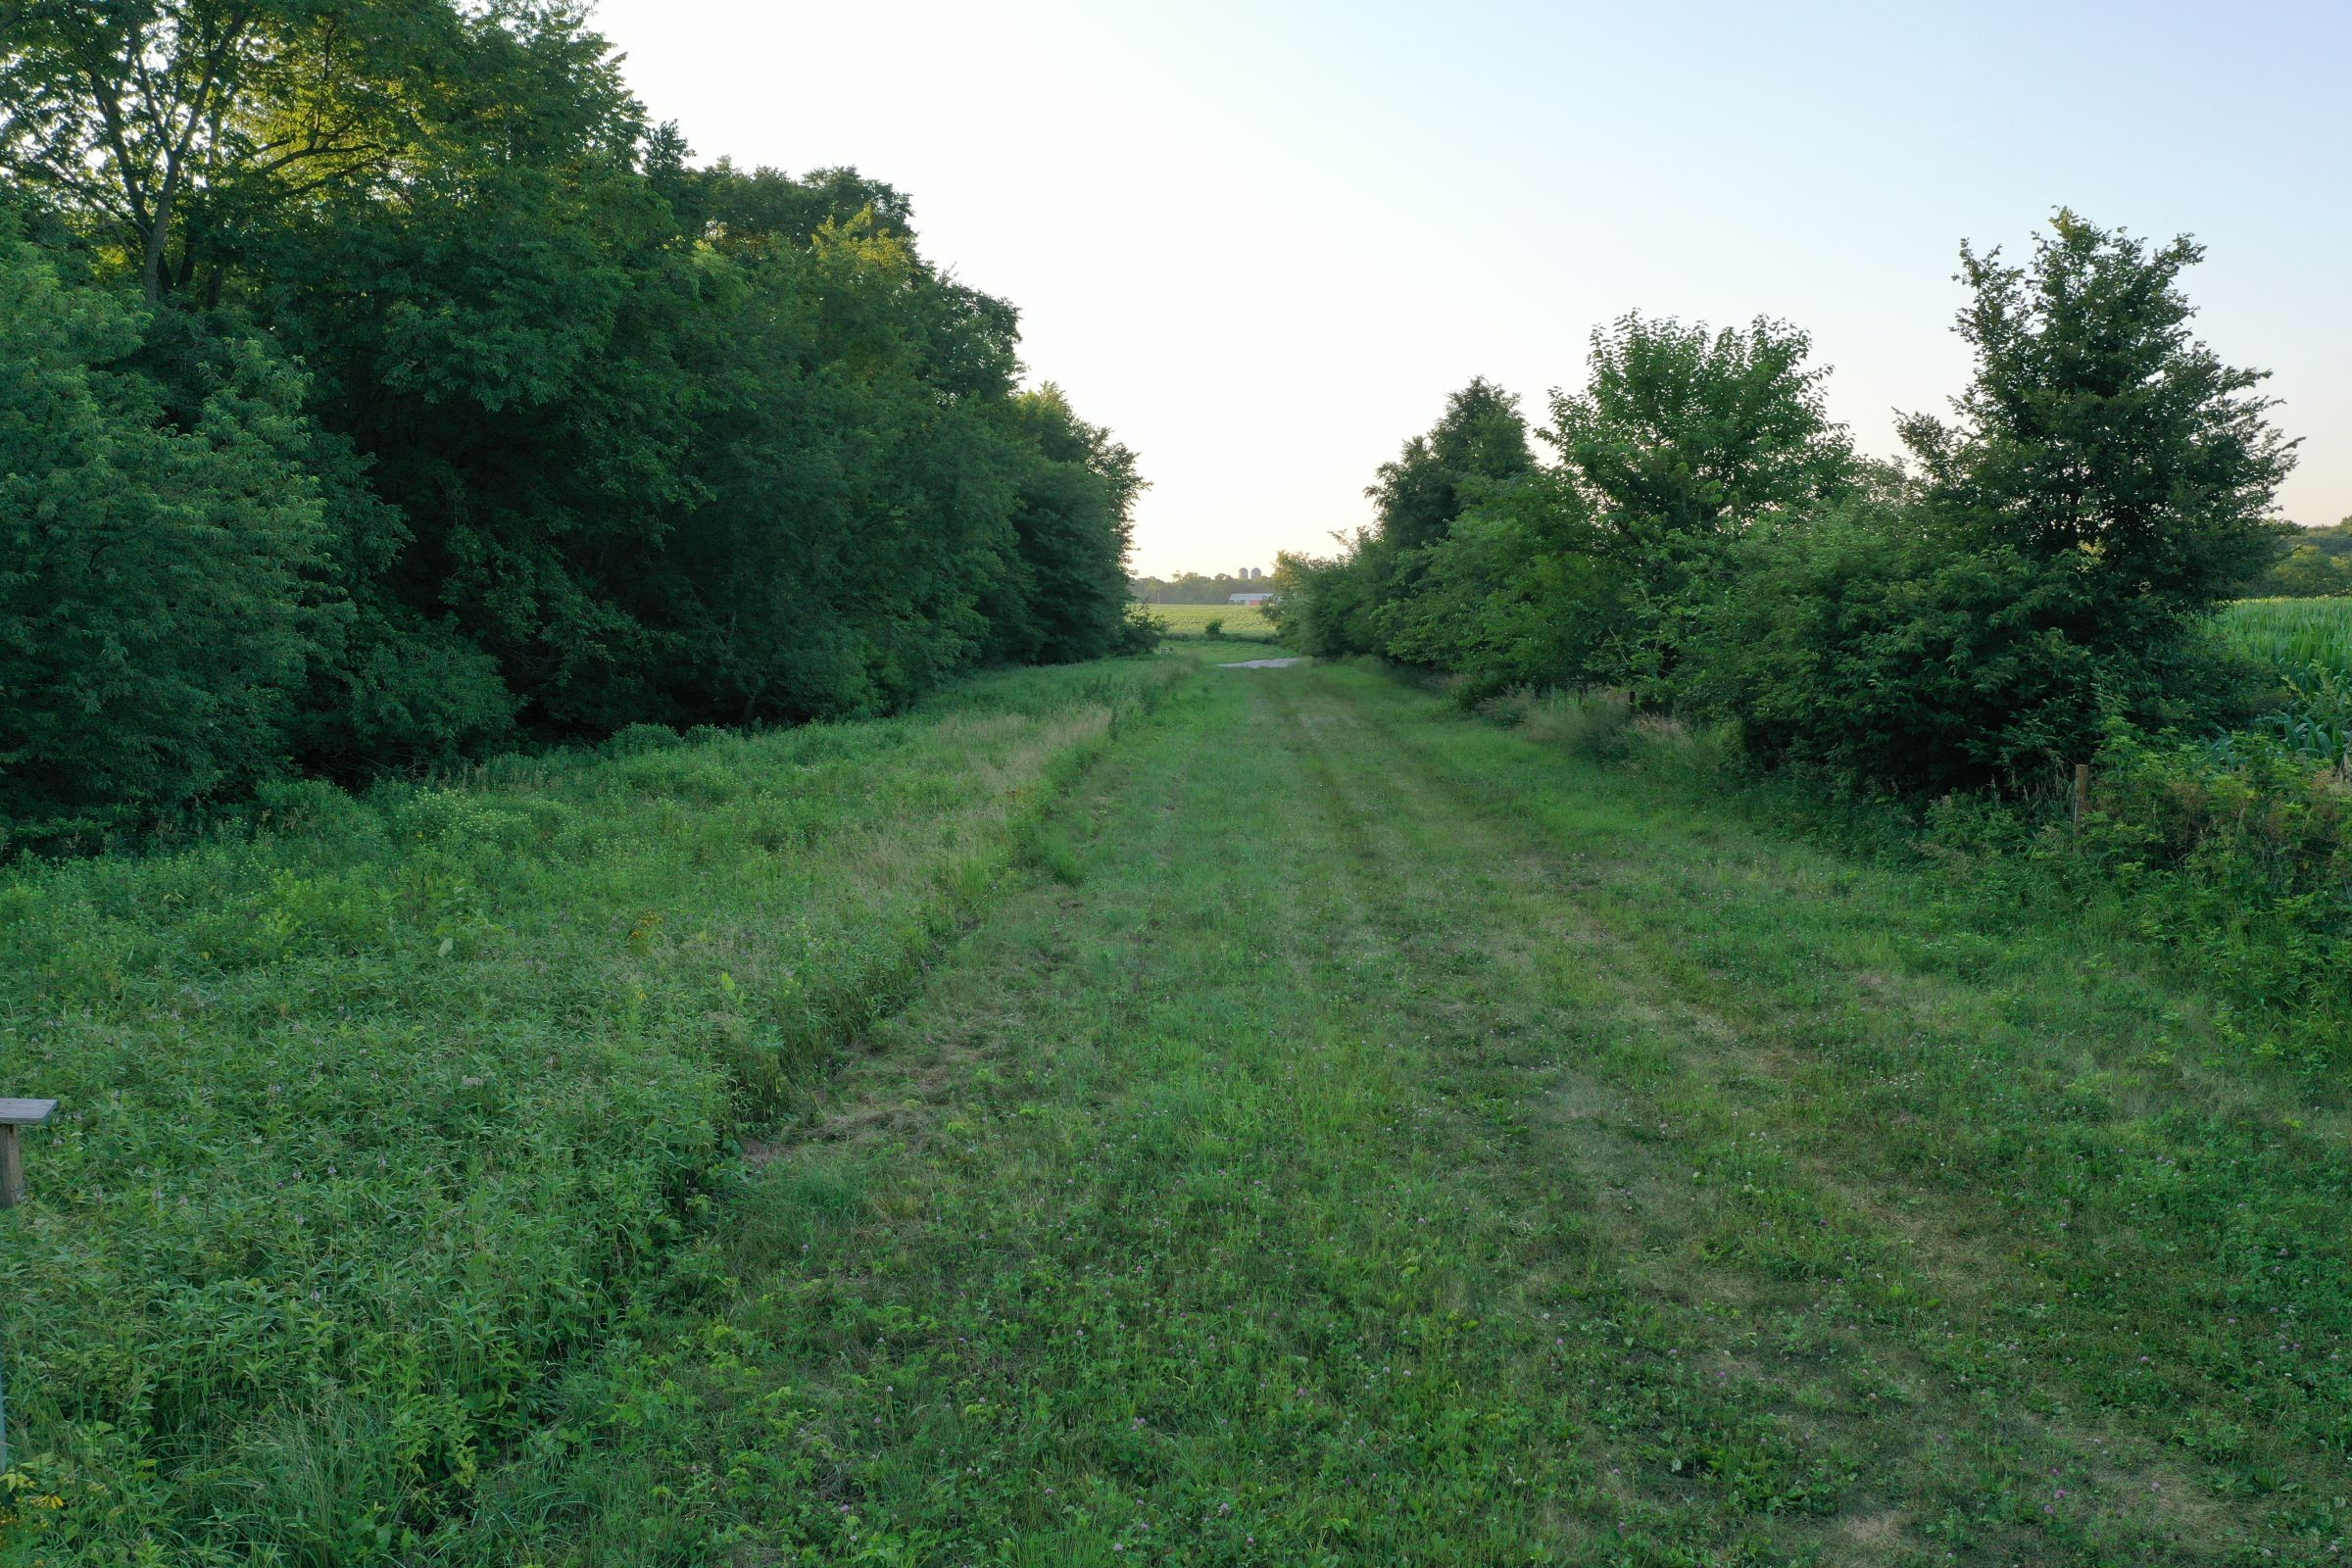 land-dallas-county-iowa-55-acres-listing-number-15081-4-2020-07-23-162424.JPG